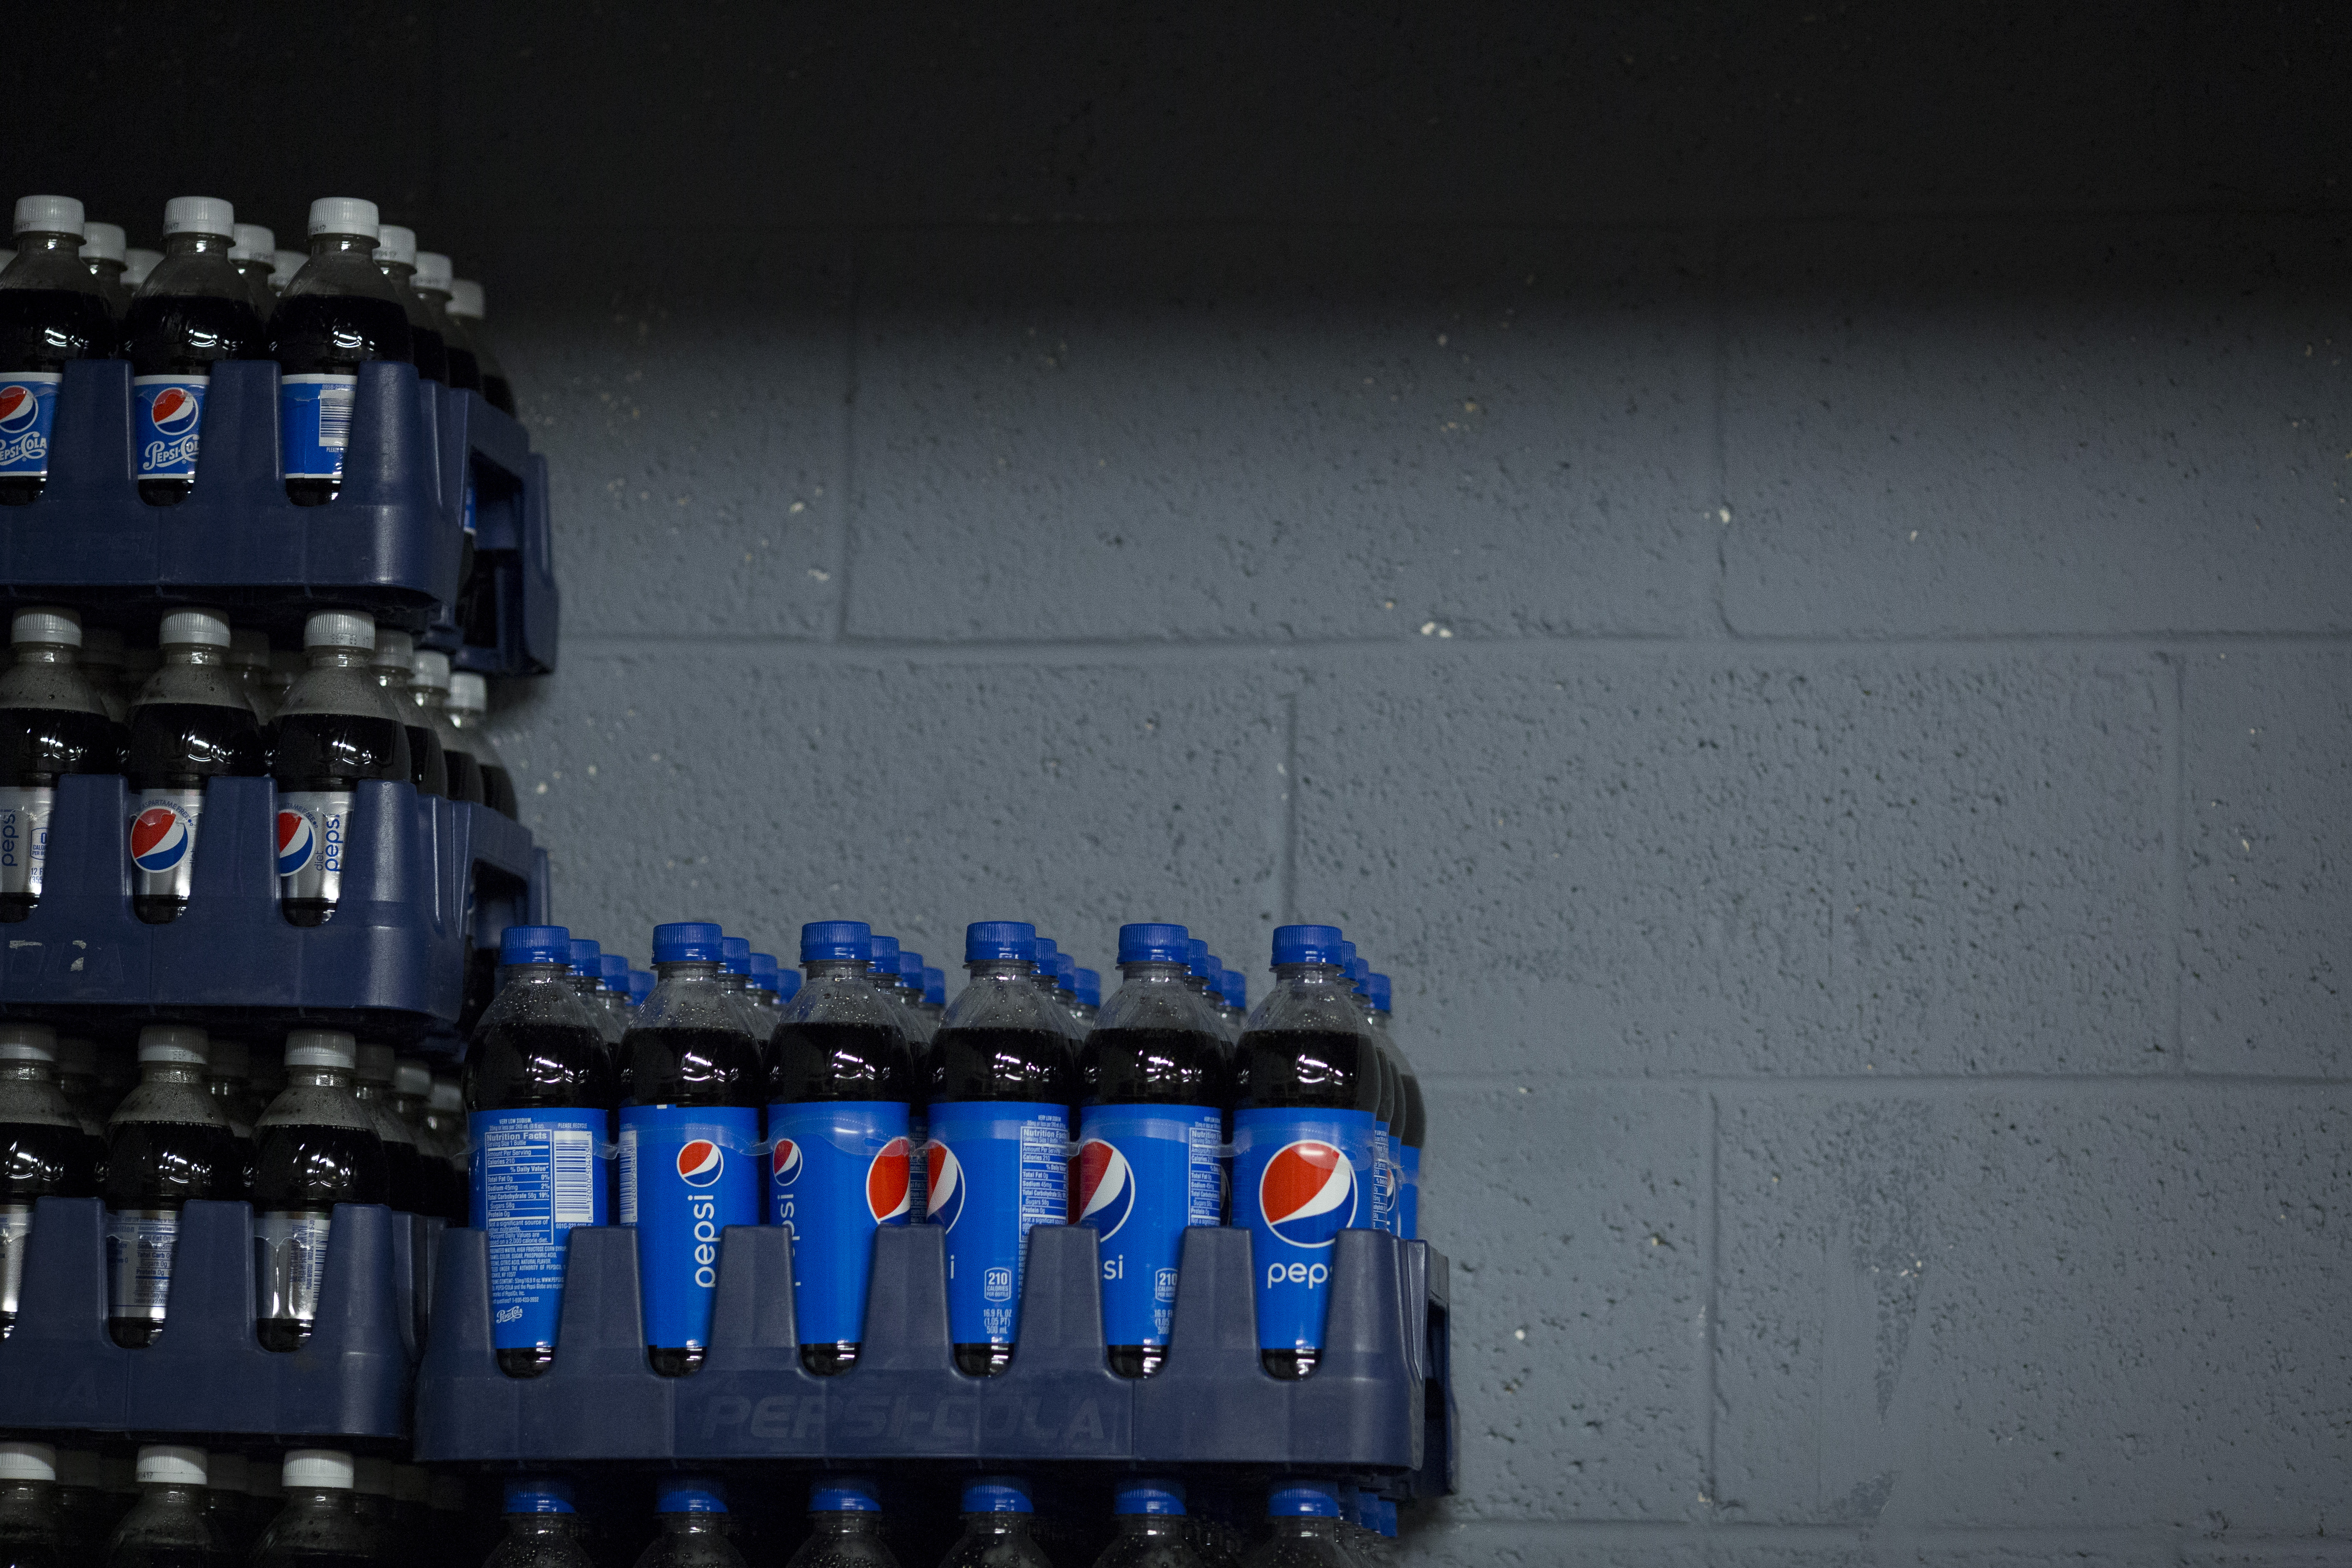 PepsiCo Inc. Product Deliveries Ahead Of Earnings Figures